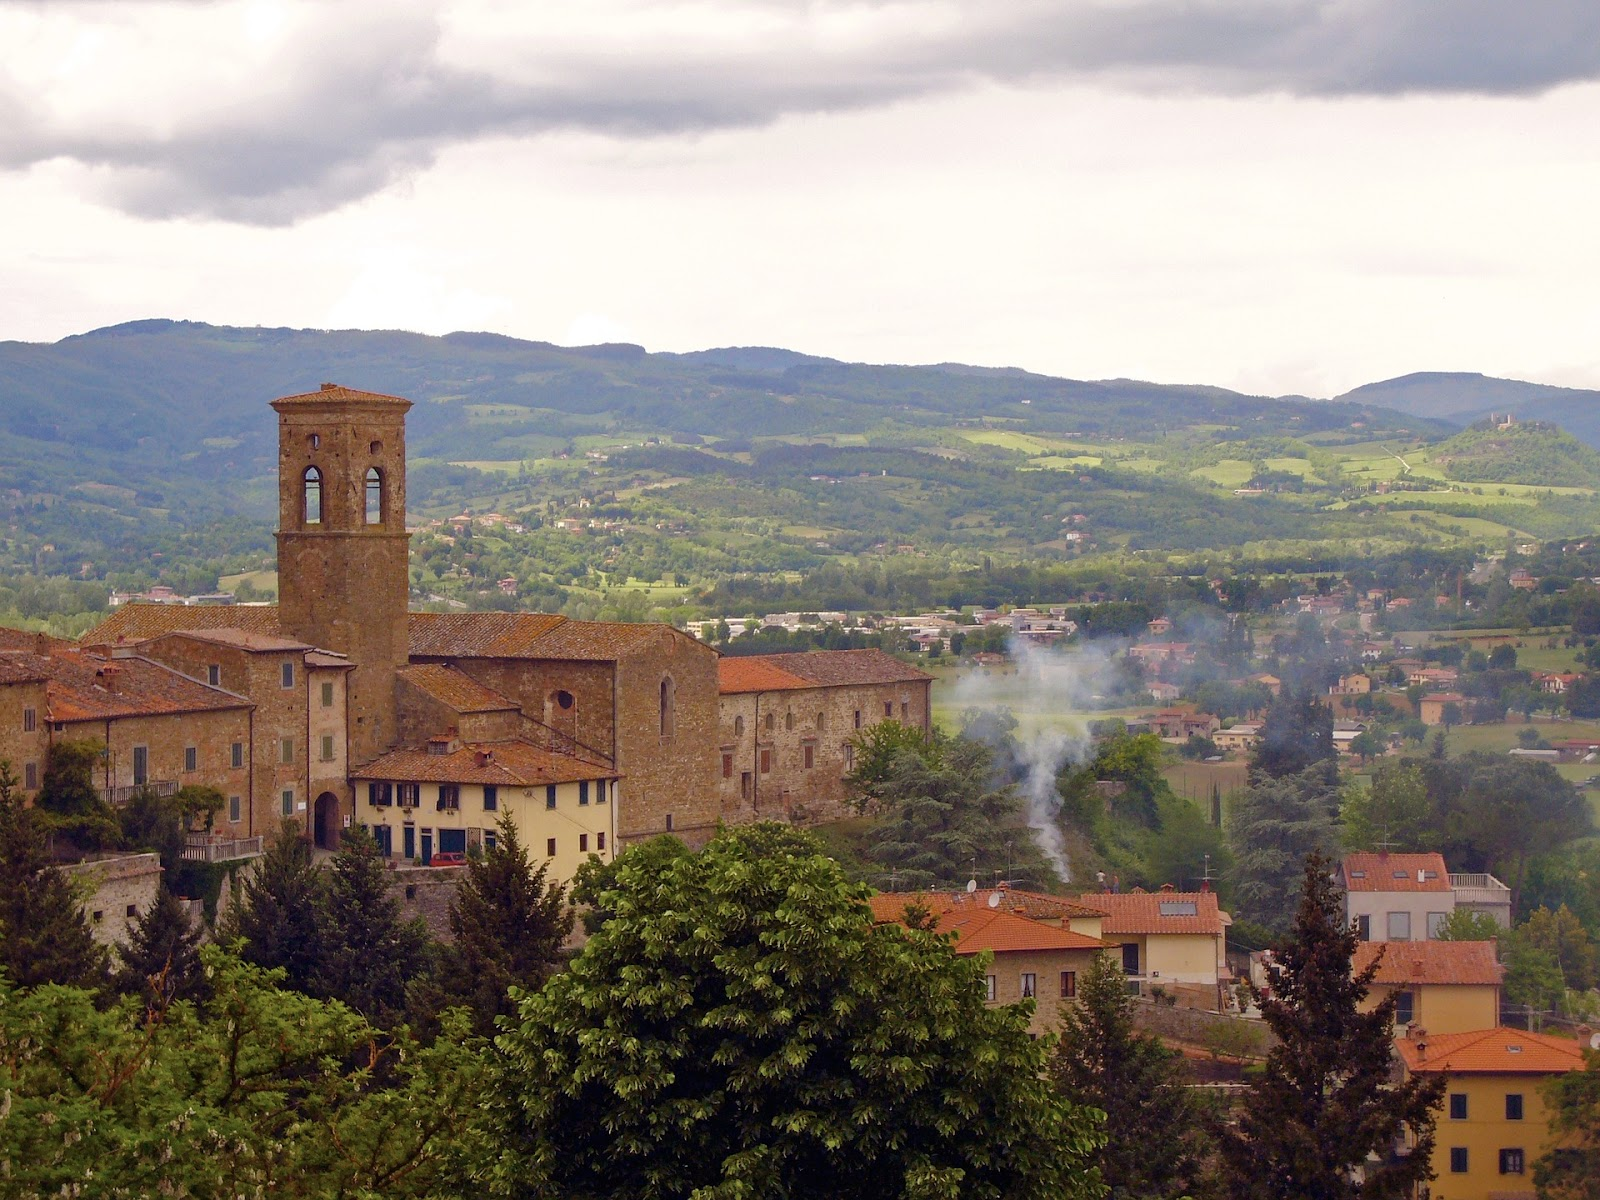 medieval tower and buildings in poppi town surrounded by trees and green fields in tuscany italy on a cloudy day